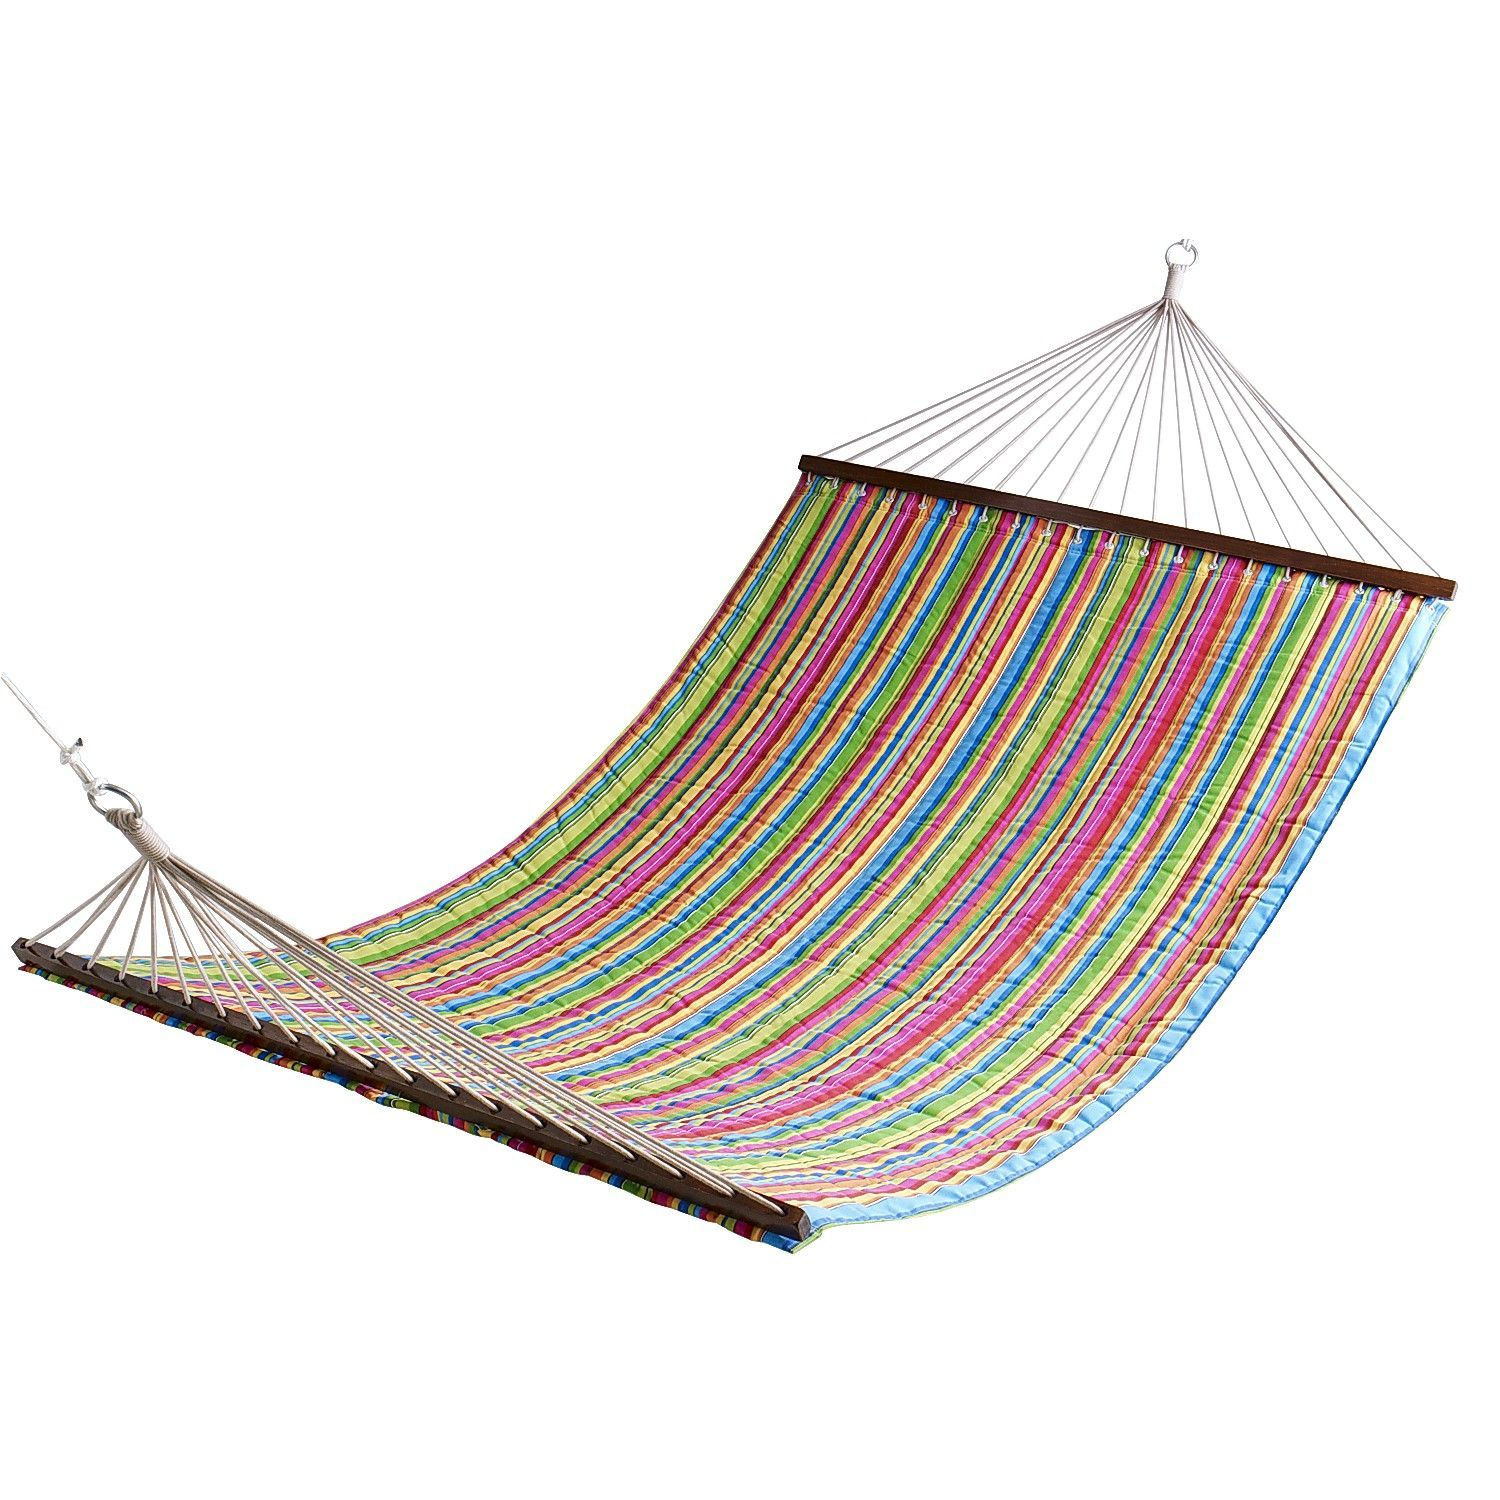 cover papasan snif with is buy image trends fascinating hanging icon perfect garden chairs hammock inspiration the tonga a outdoor and swing of bed lovely for canopy best picture